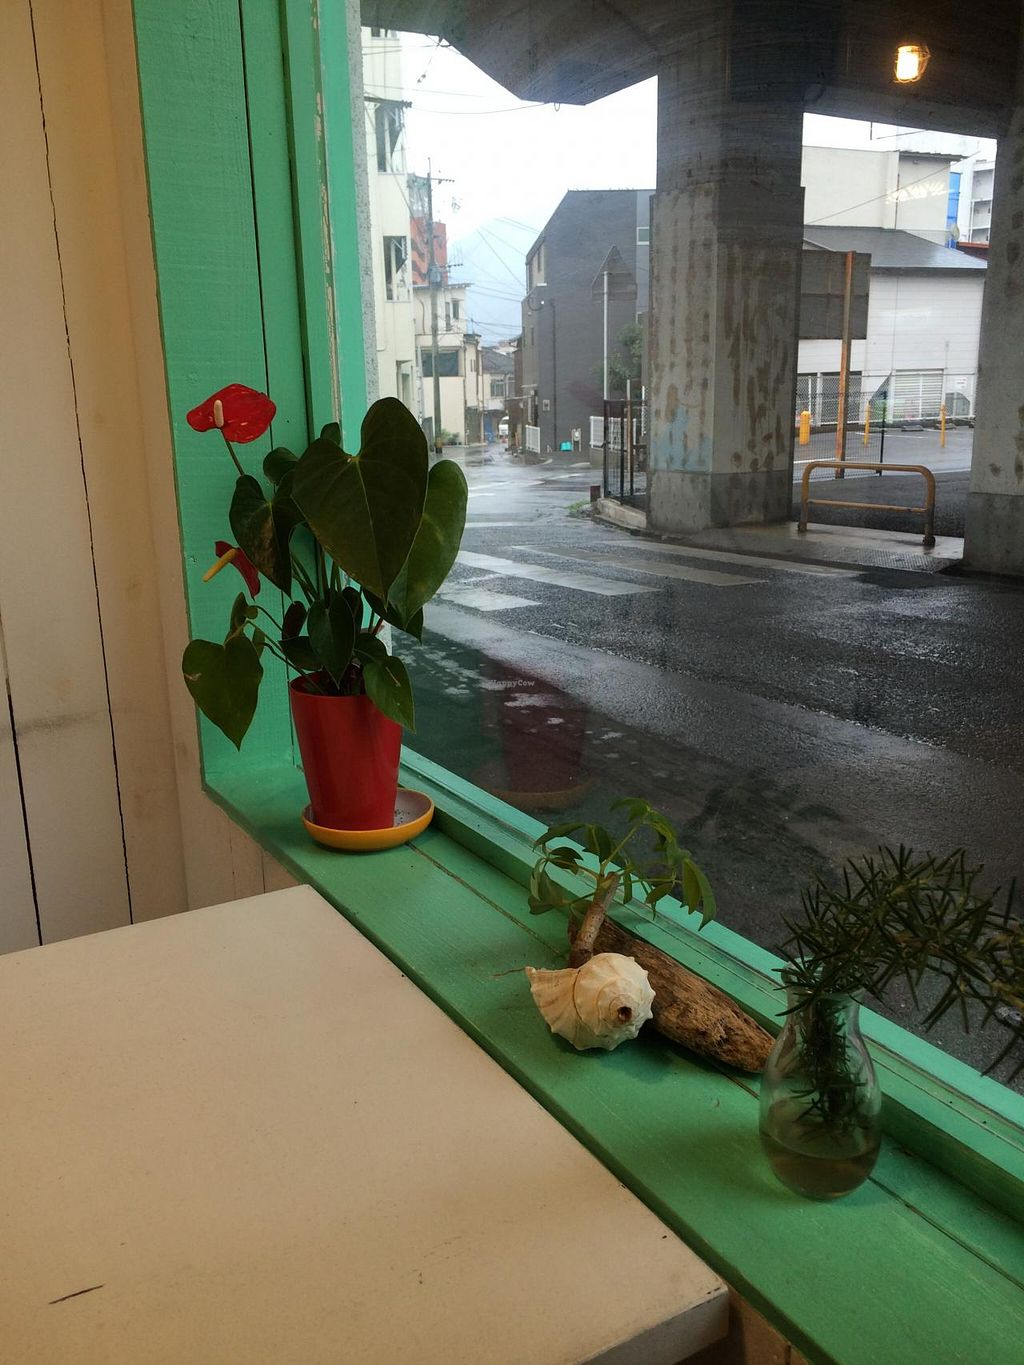 """Photo of Hachi Cafe  by <a href=""""/members/profile/thepianowindow"""">thepianowindow</a> <br/>Hachi Cafe <br/> July 4, 2015  - <a href='/contact/abuse/image/57386/108178'>Report</a>"""